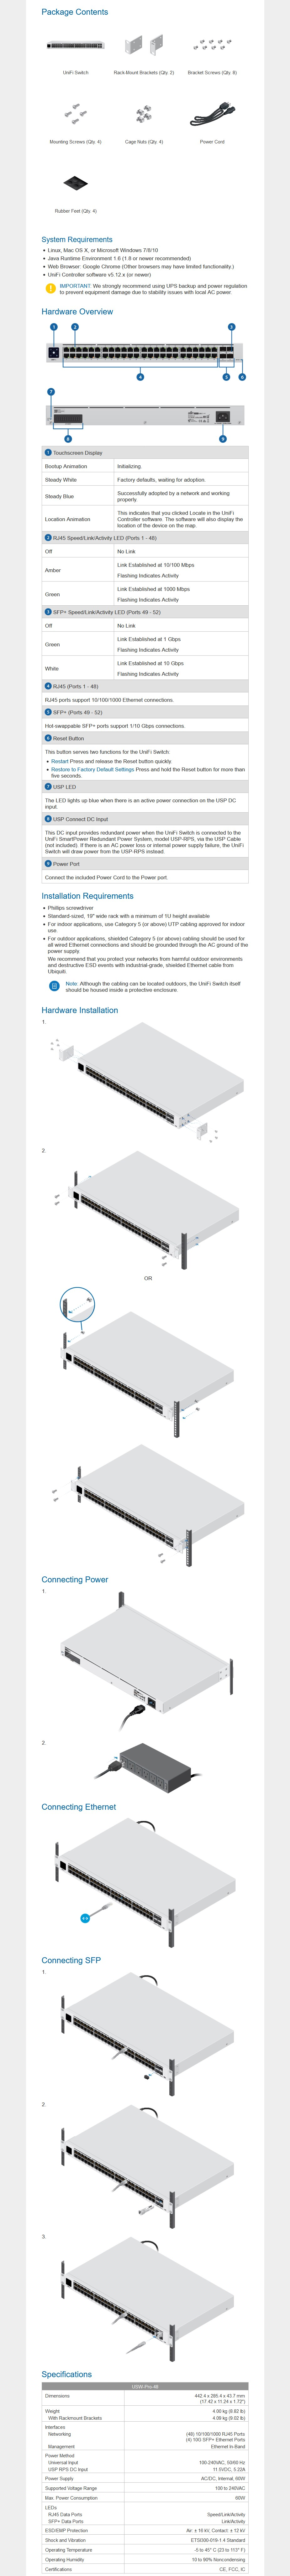 Ubiquiti Networks USW-48-PRO 48 Port Managed Gen2 Gigabit Switch - Touch Display - Overview 1